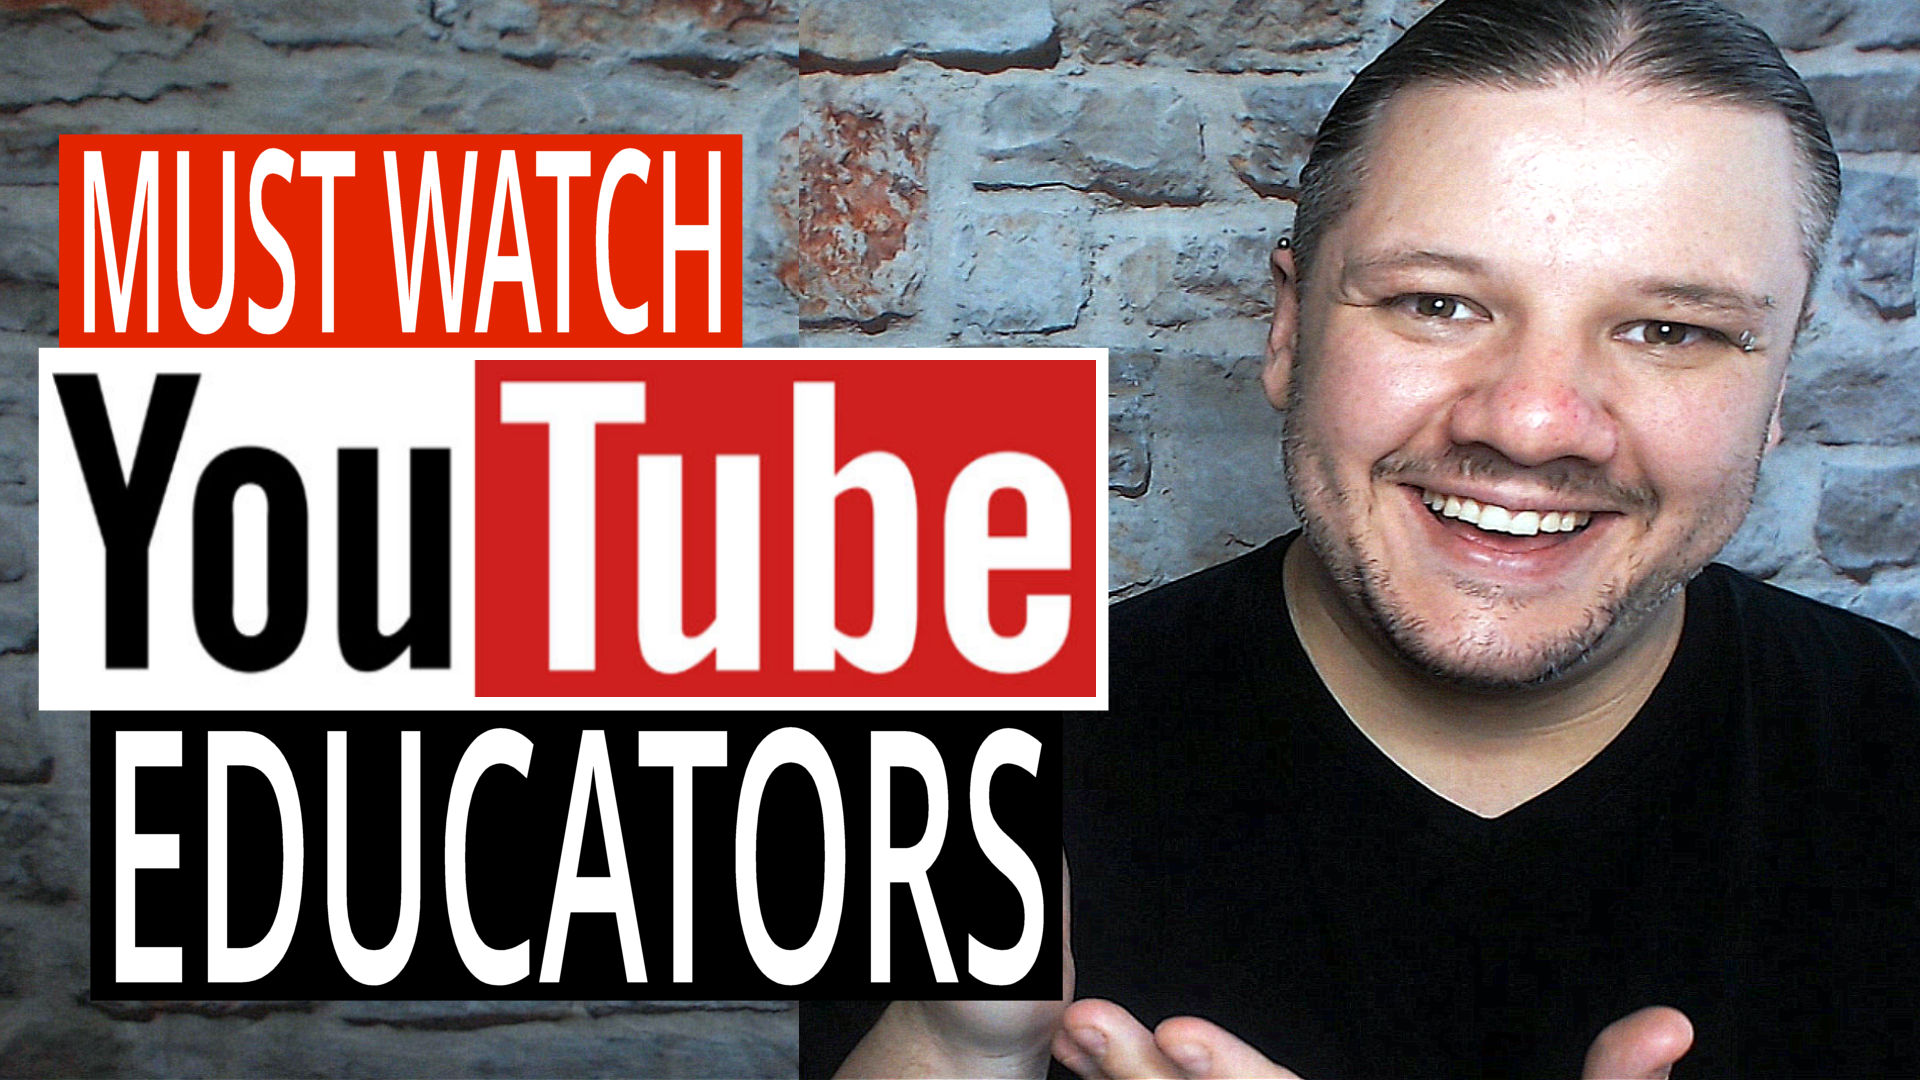 alan spicer,alanspicer,youtube tips,youtube tricks,youtube tips 2018,nick nimmin,amy landino,roberto blake,tim schmoyer,brian g johnson,youtube educatiors,education,youtube educators for small youtubers,small youtuber,small youtuber educator,youtube educational videos,5 YouTube Educators That ALL Small YouTubers MUST See,small youtubers,how to grow on youtube,grow your youtube channel,how to grow your youtube channel,youtube growth,channel suggestions